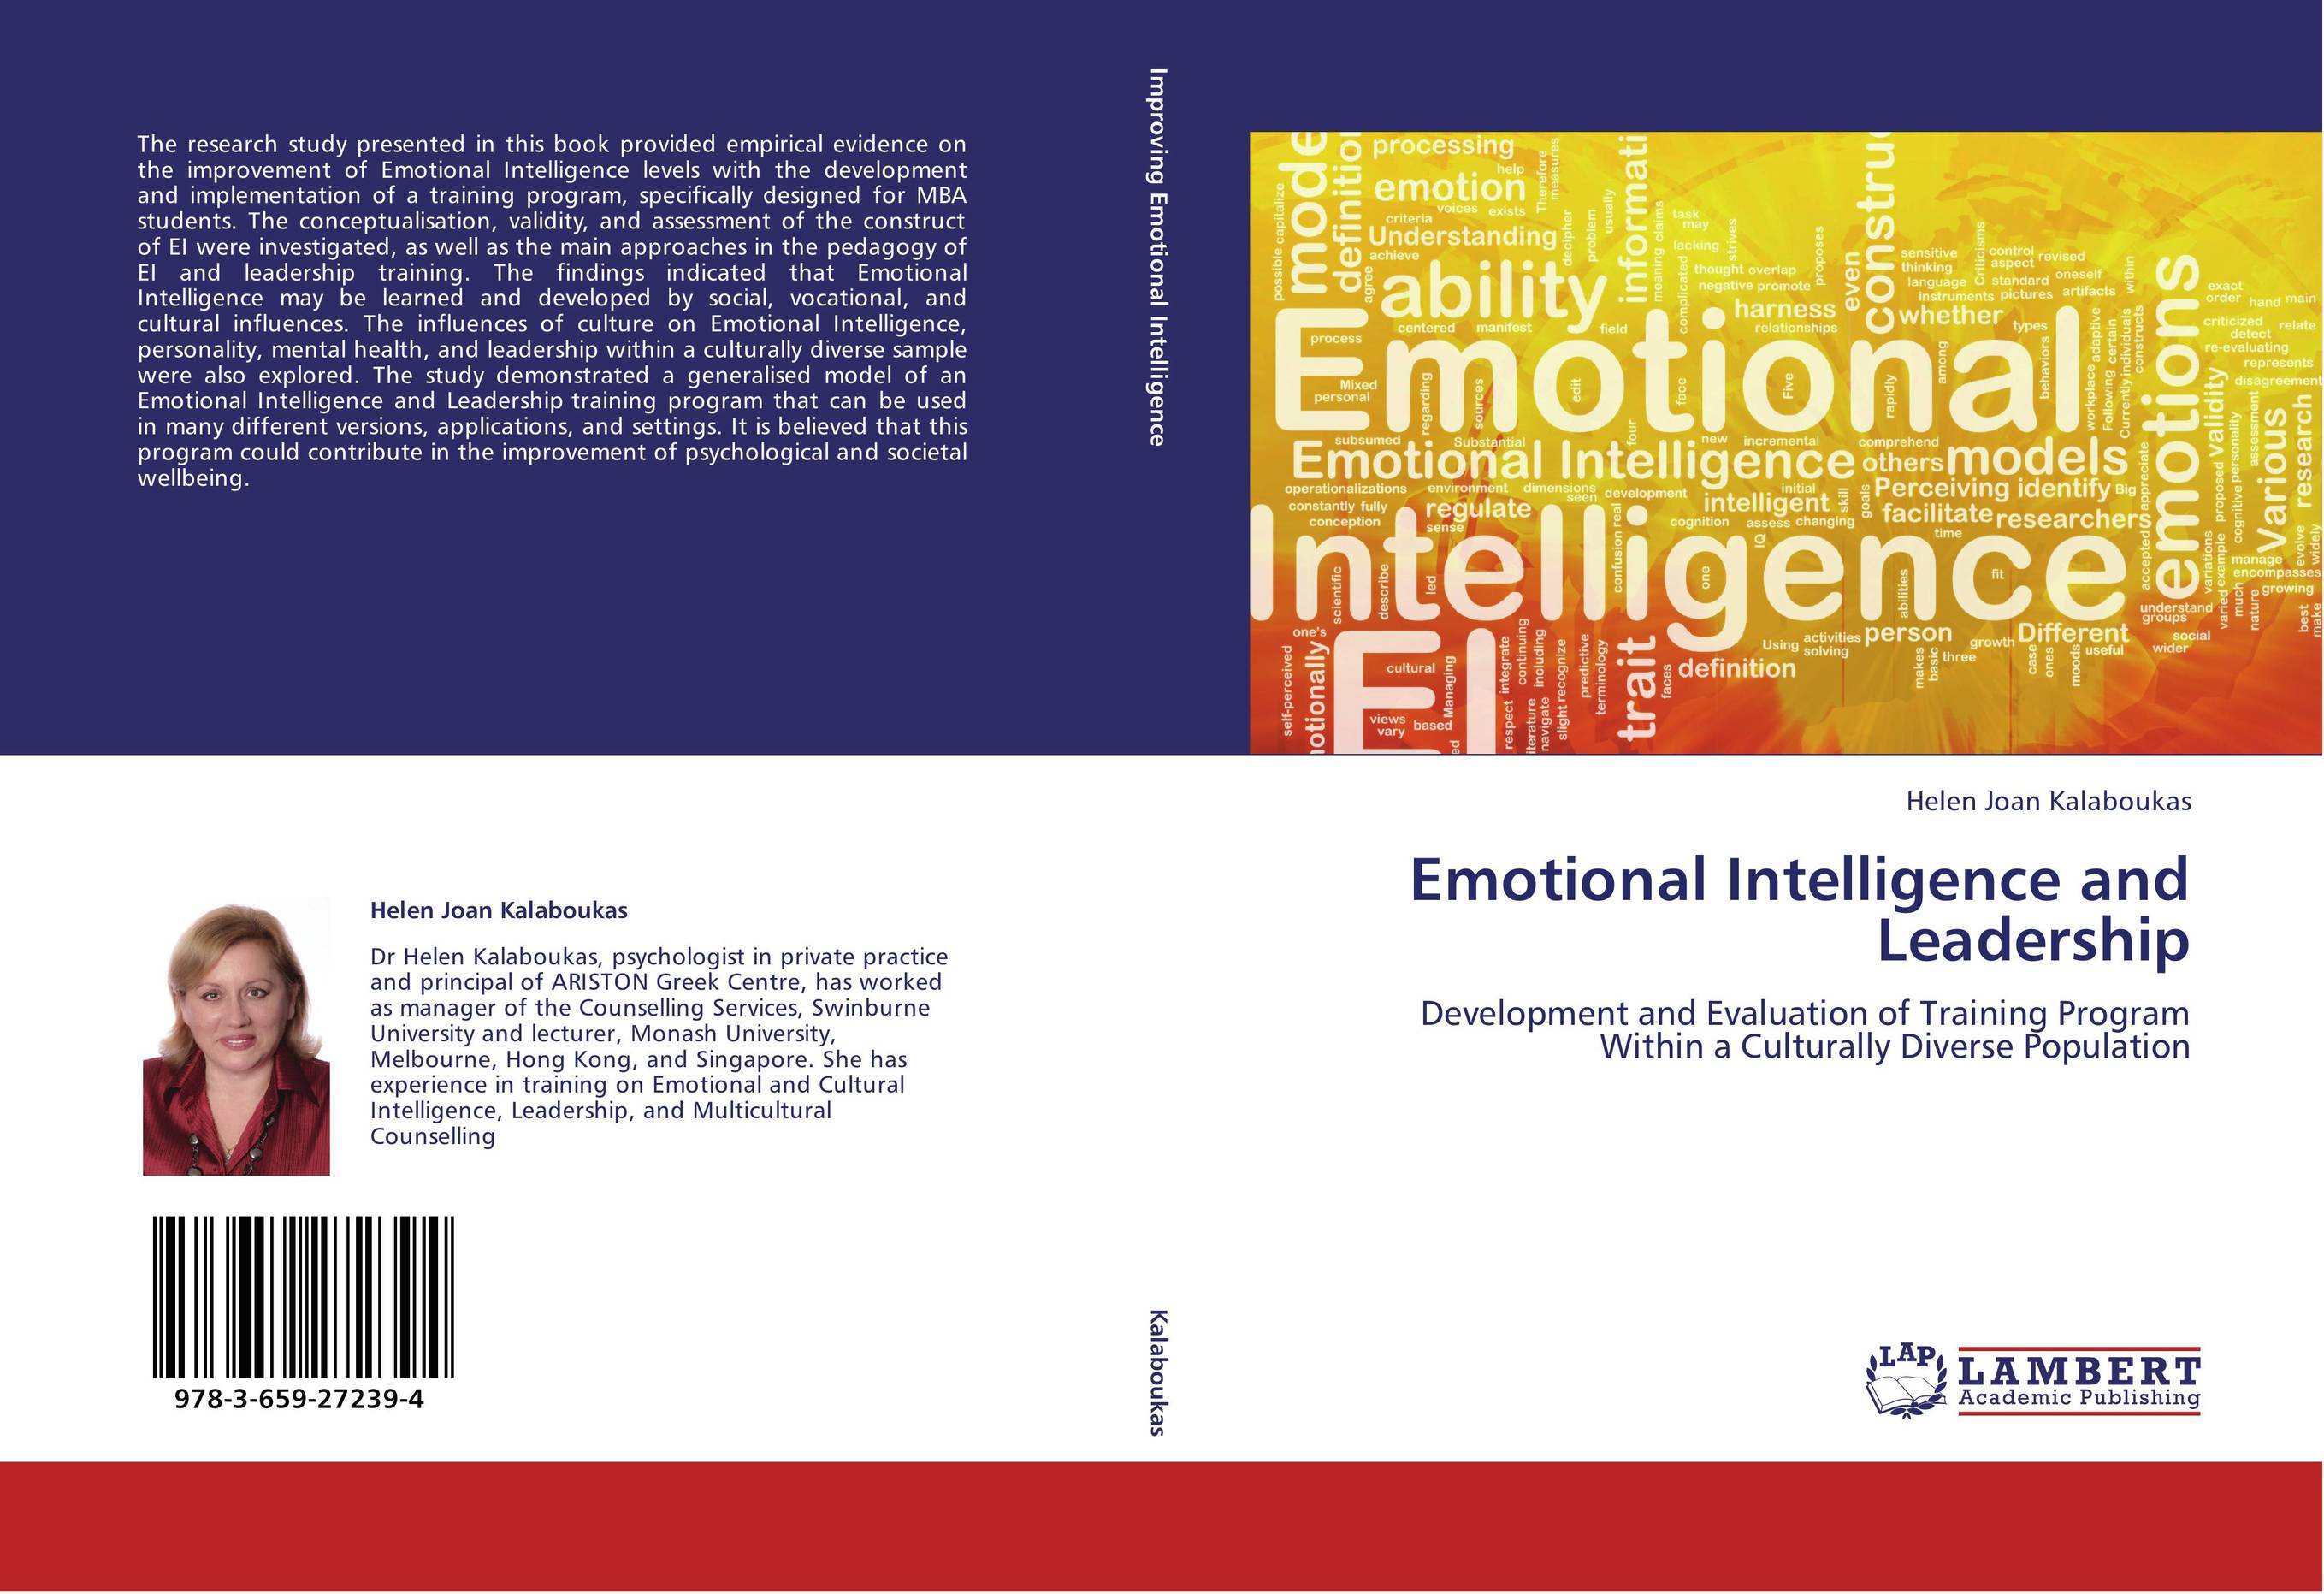 emotional intelligence leadership assessment and development Hogan eq report the hogan eq report assesses emotional intelligence, the ability to identify and manage your own and others' emotions based on the hogan personality inventory and hogan development survey, the easy-to-understand report provides an overall eq score, as well as scores and feedback for six emotional competencies.